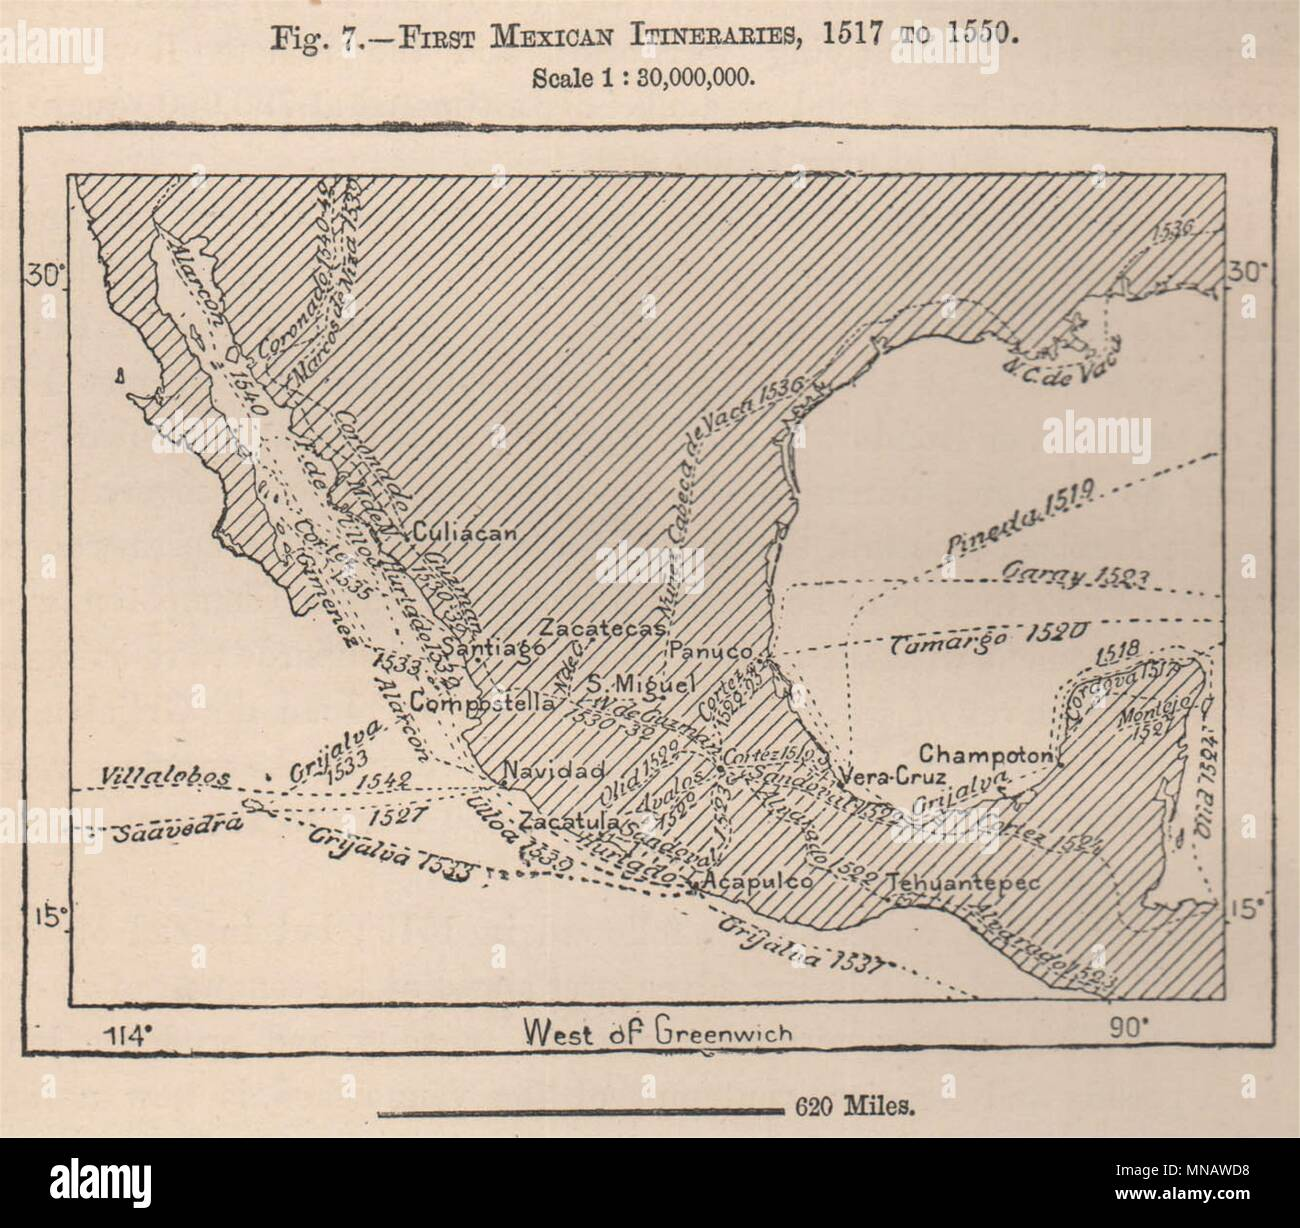 First Mexican exploration Itineraries, 1517 to 1550. Mexico 1885 old map - Stock Image